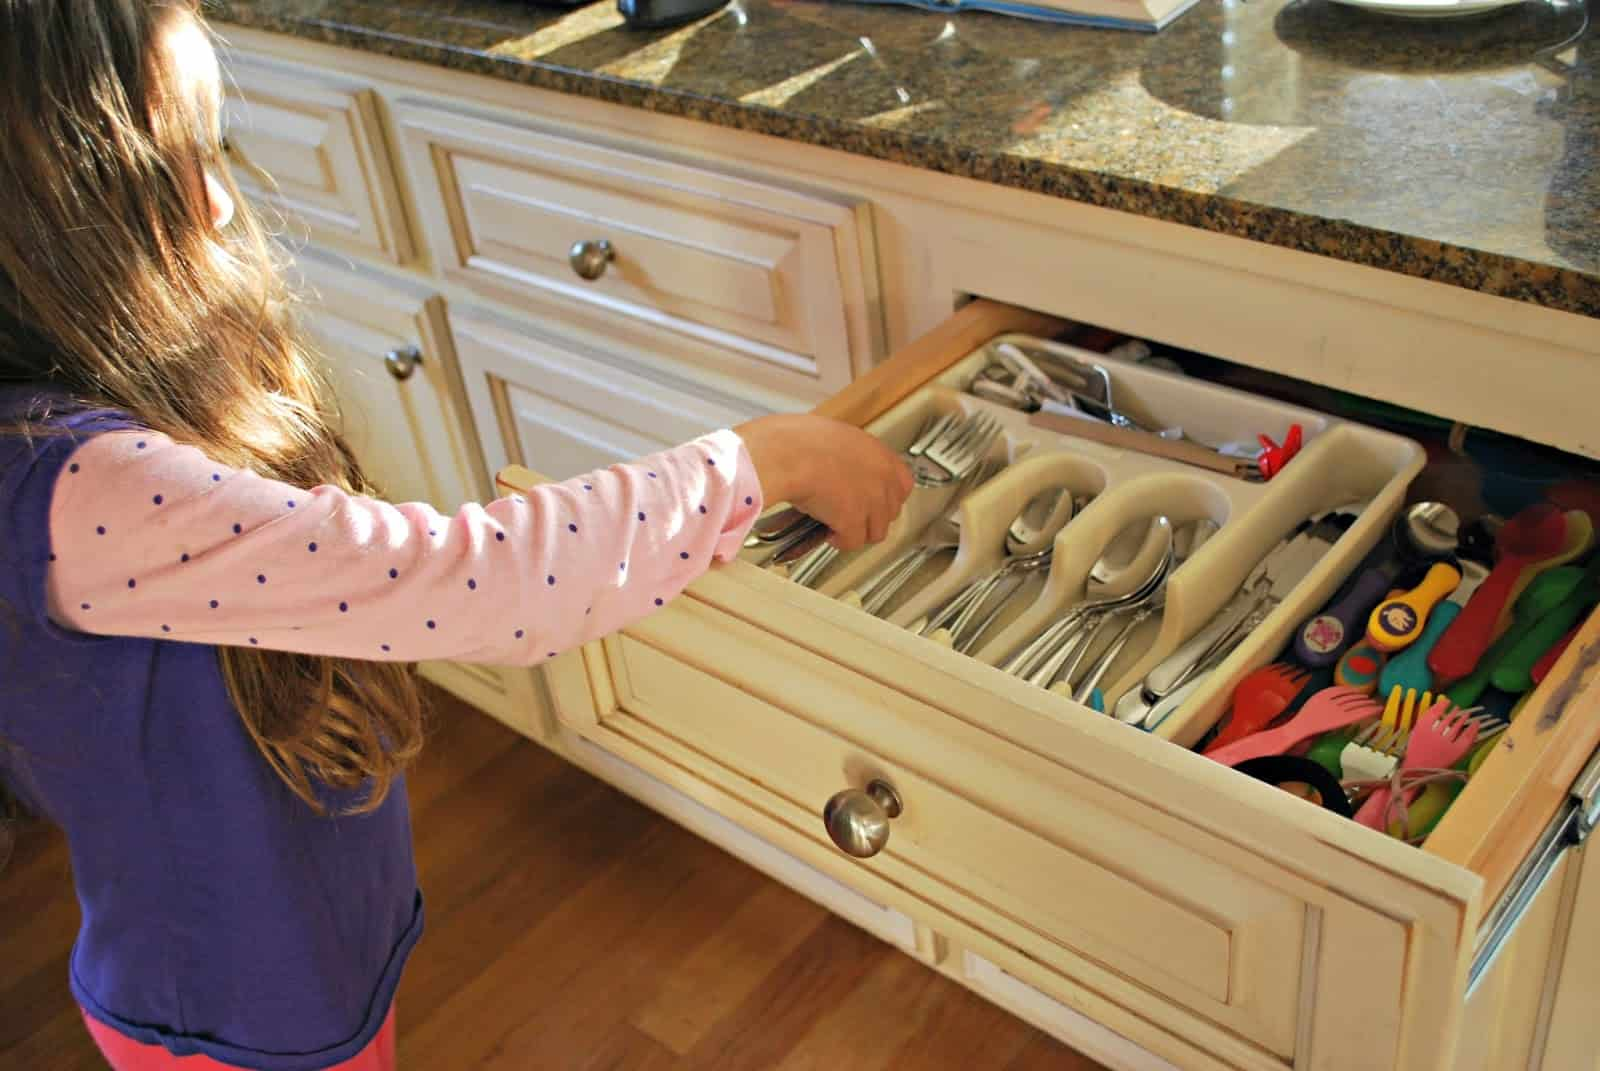 Kitchen Chores For Kids Mess For Less